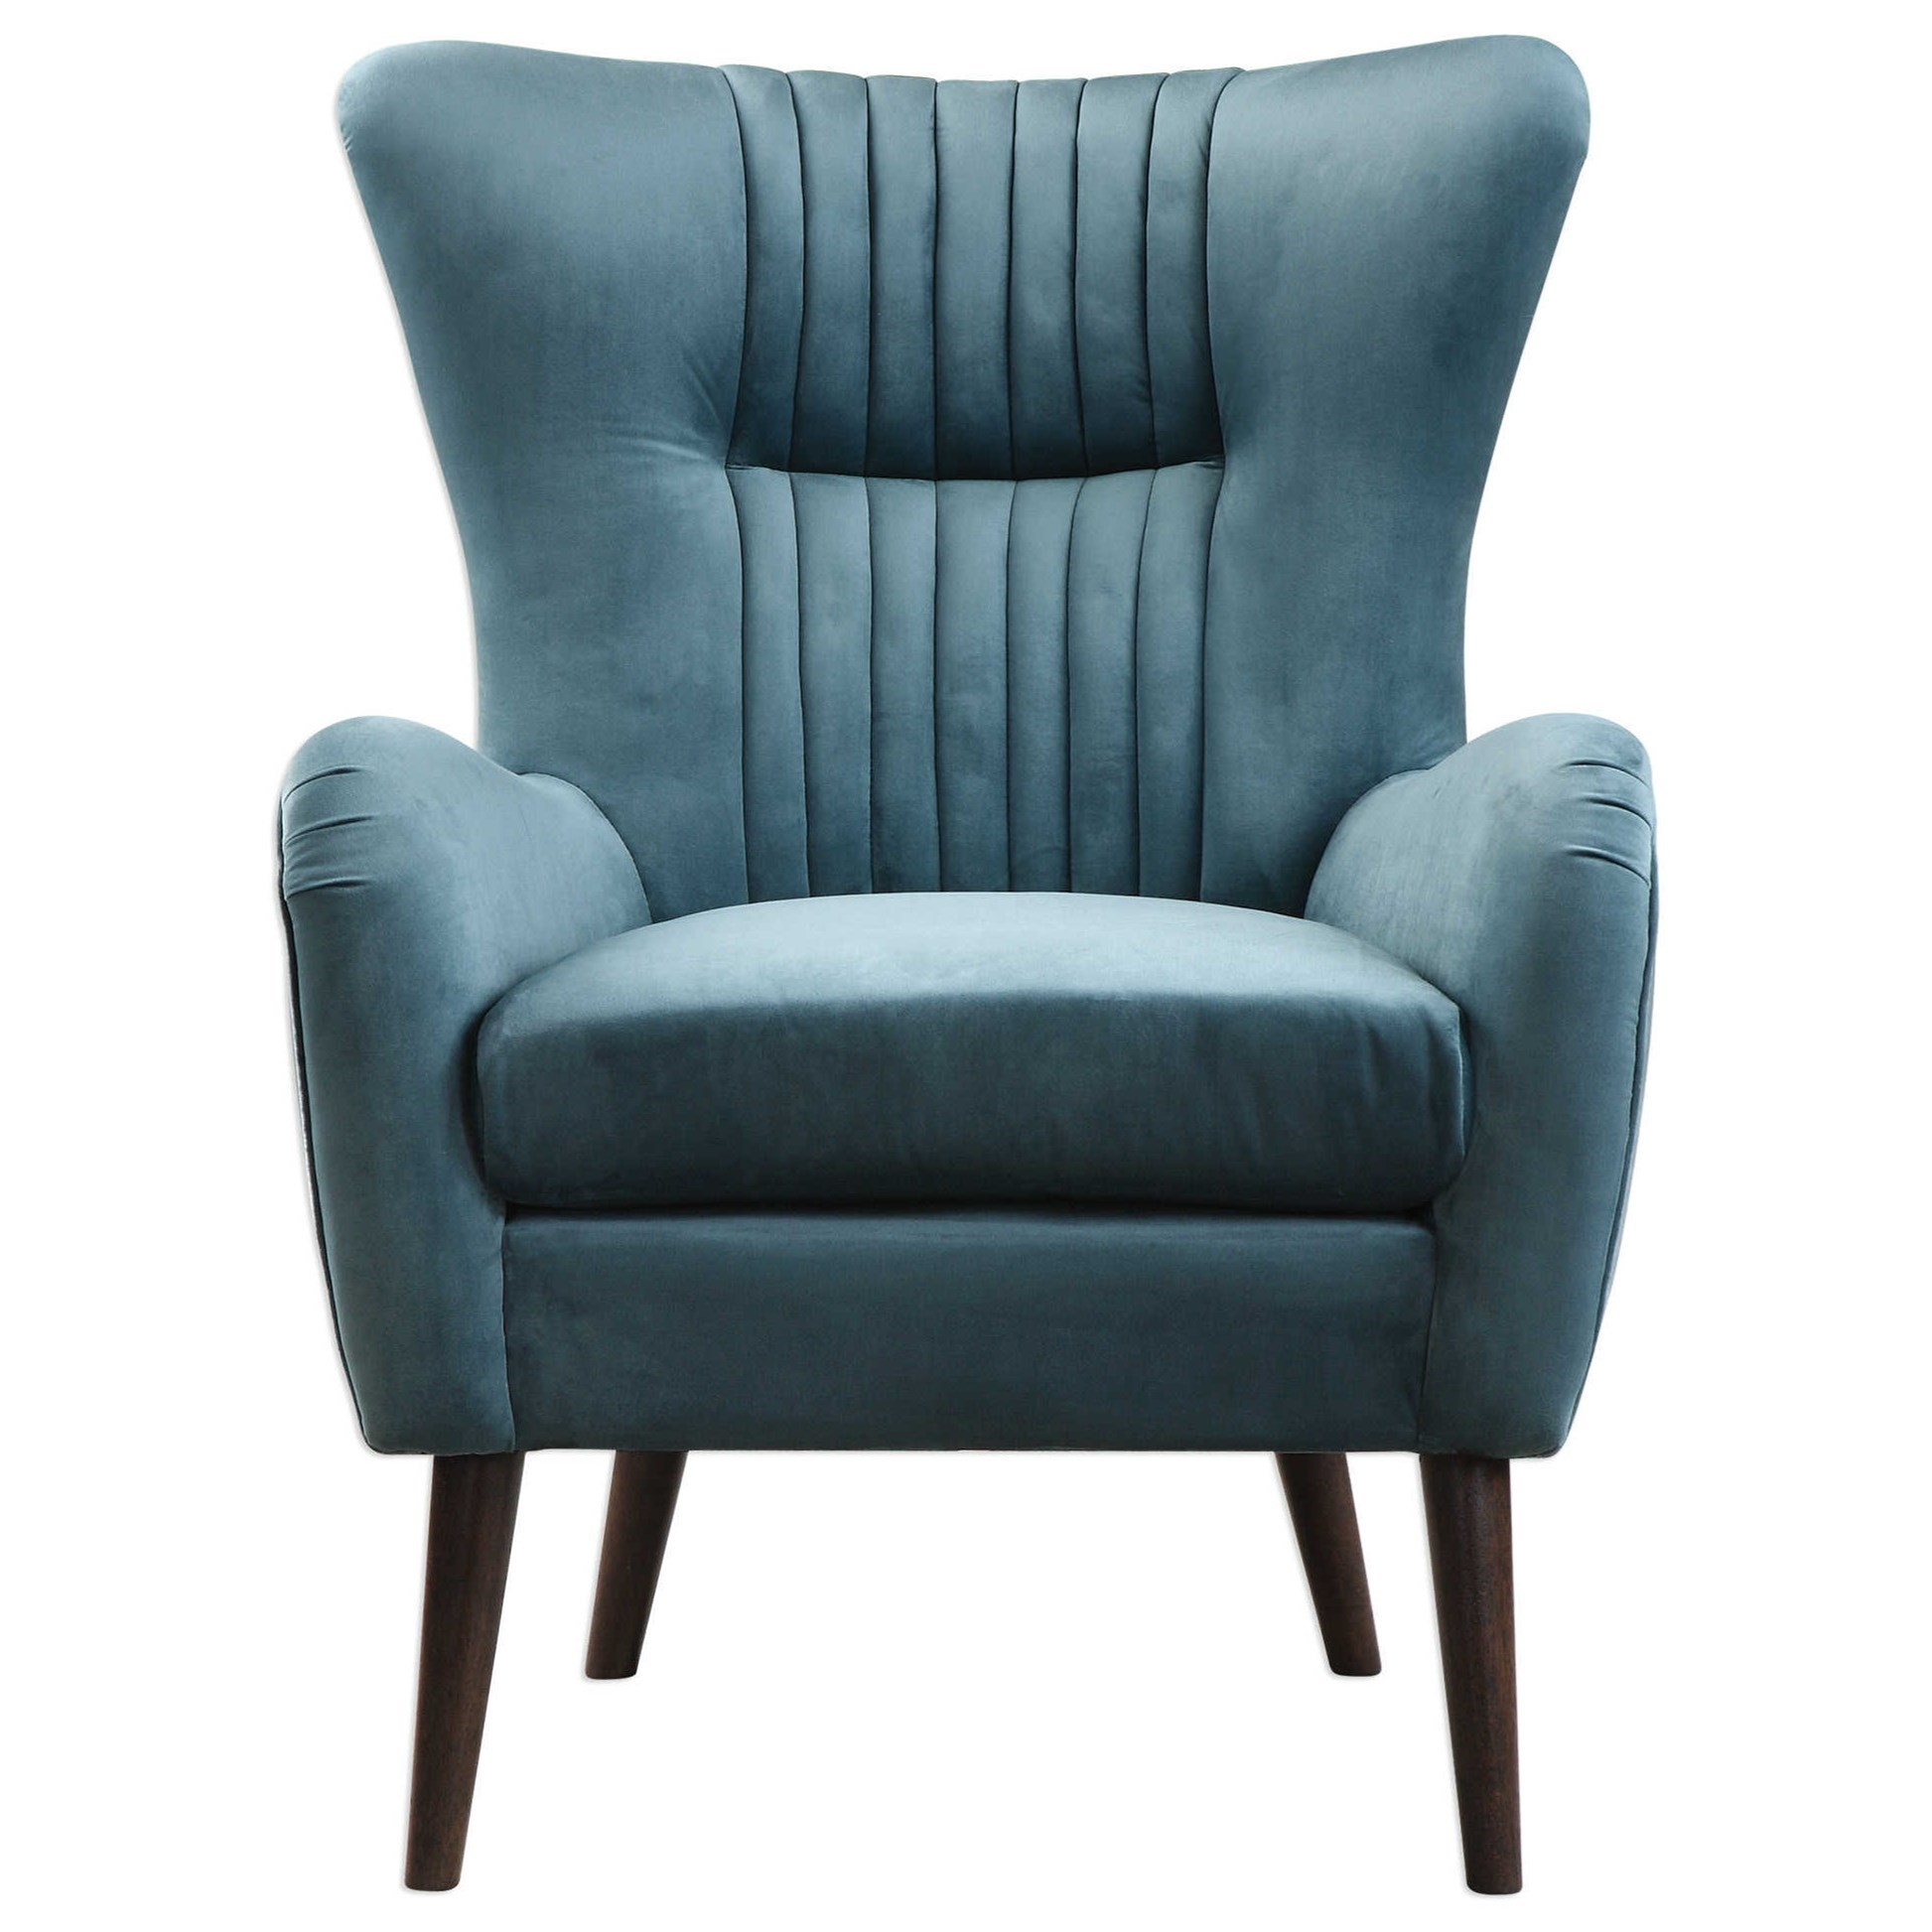 Accent Furniture - Accent Chairs Dax Mid-Century Accent Chair by Uttermost at Michael Alan Furniture & Design